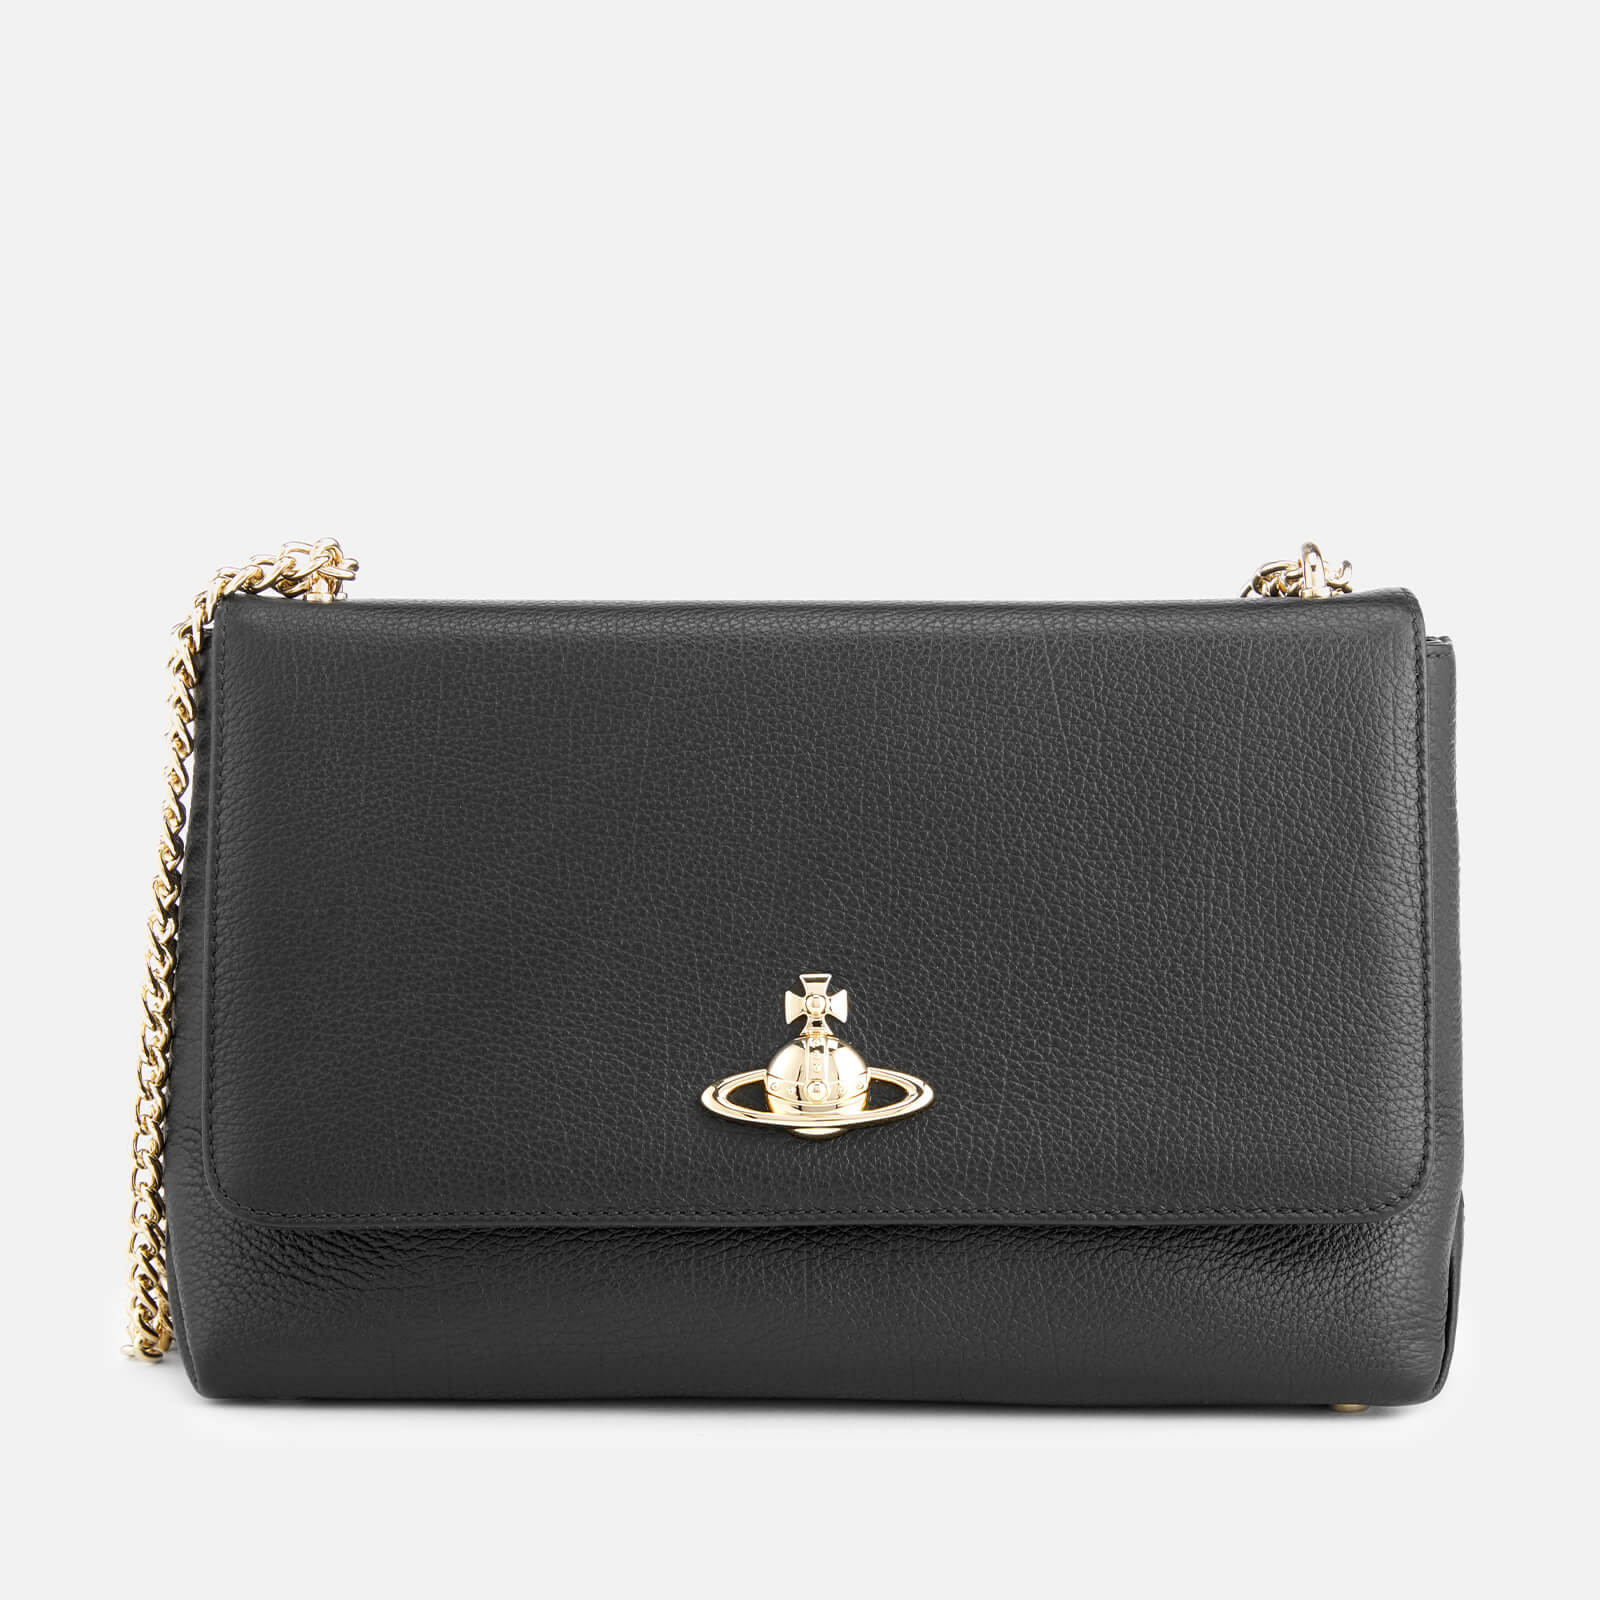 f6b60a34e0 Vivienne Westwood Women's Balmoral Large Bag with Flap and Chain - Black -  Free UK Delivery over £50